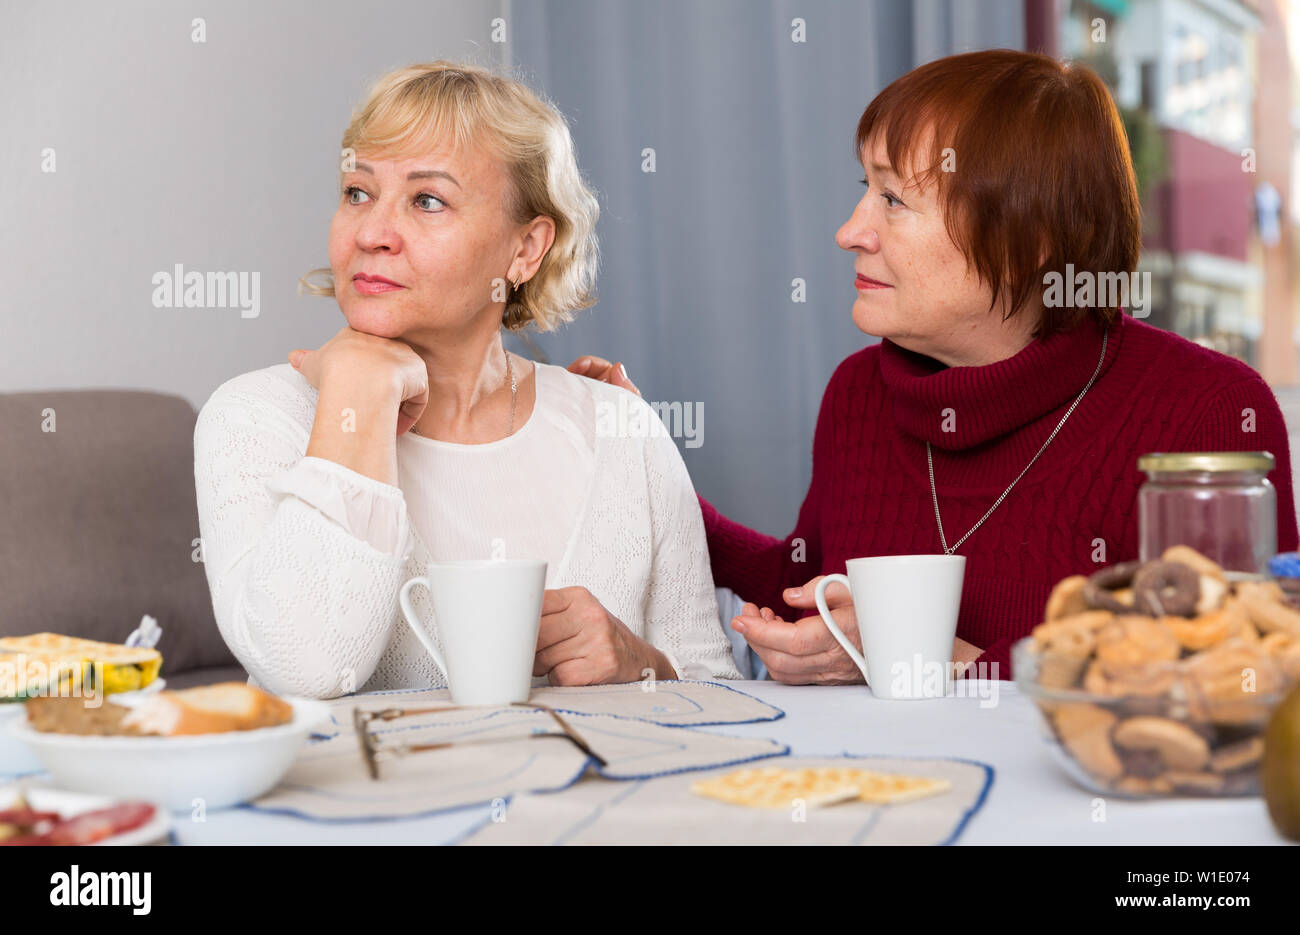 Mature lady trying to calm her female friend and apologize after quarrel - Stock Image